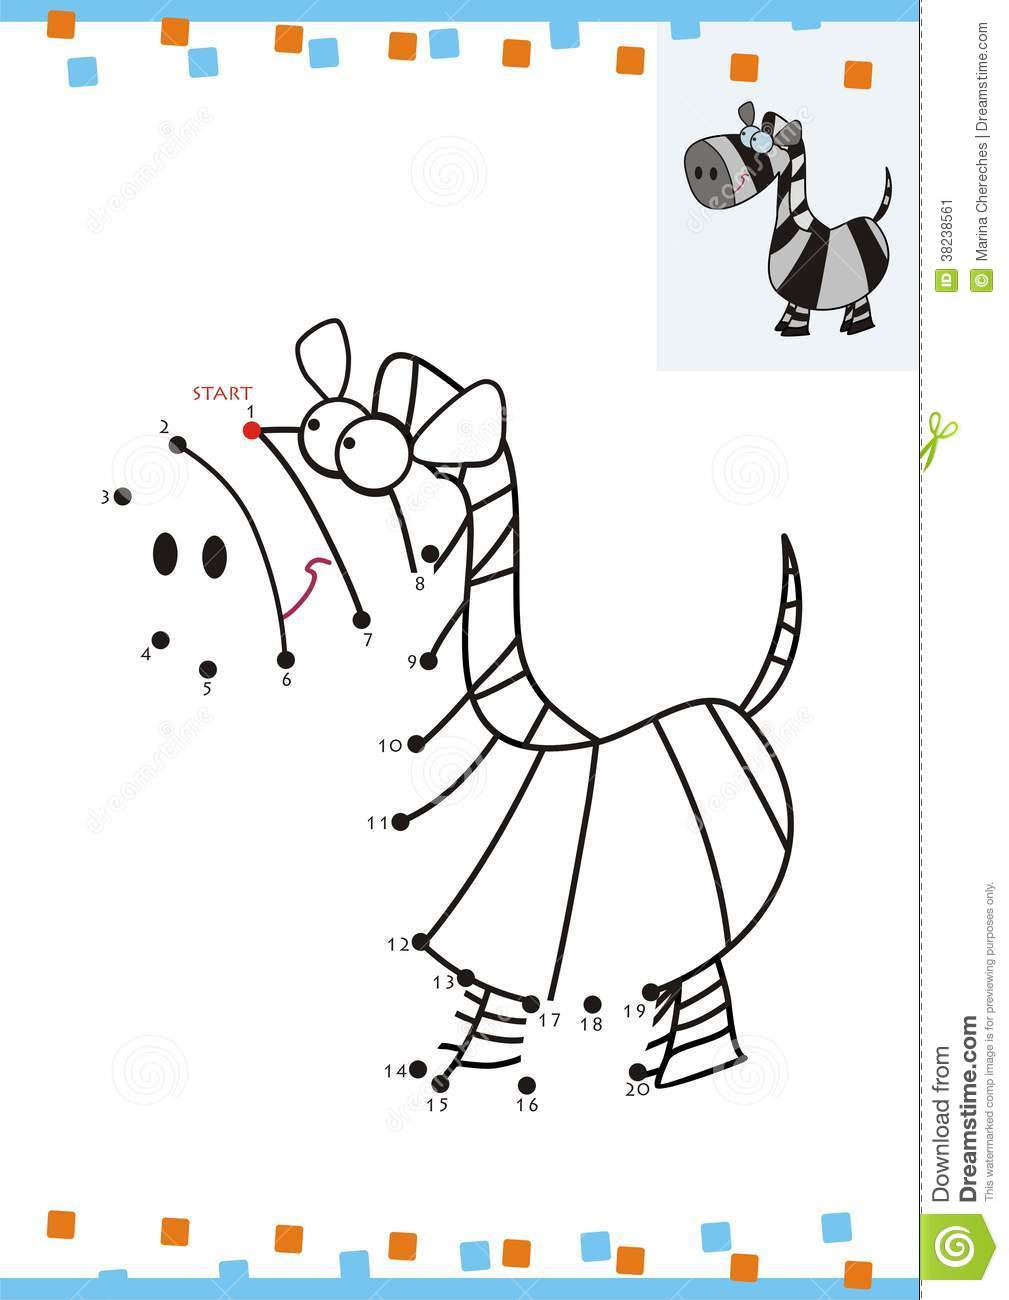 Coloring Book Dot To Dot. The Zebra Stock Image - Image: 38238561